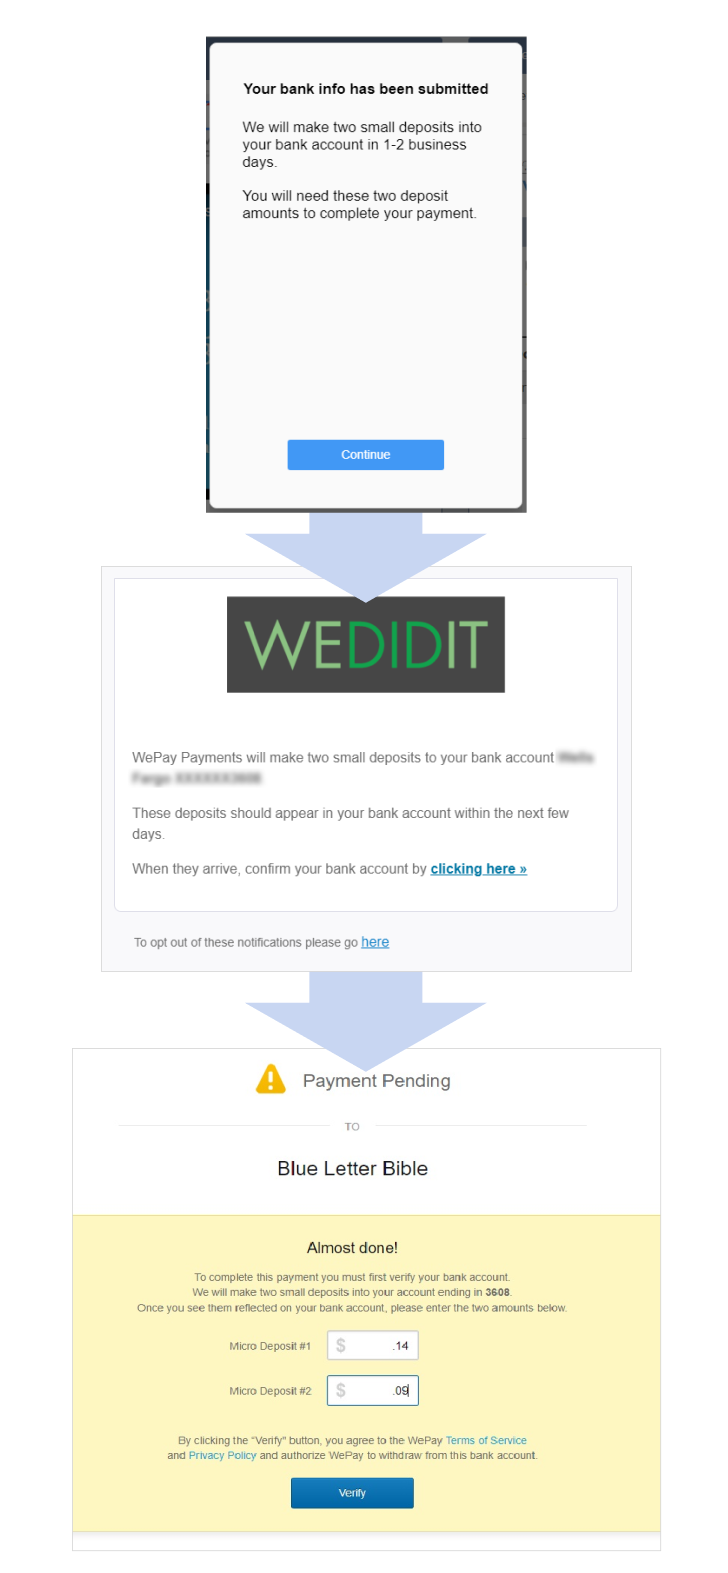 Bank verification process with WeDidIt